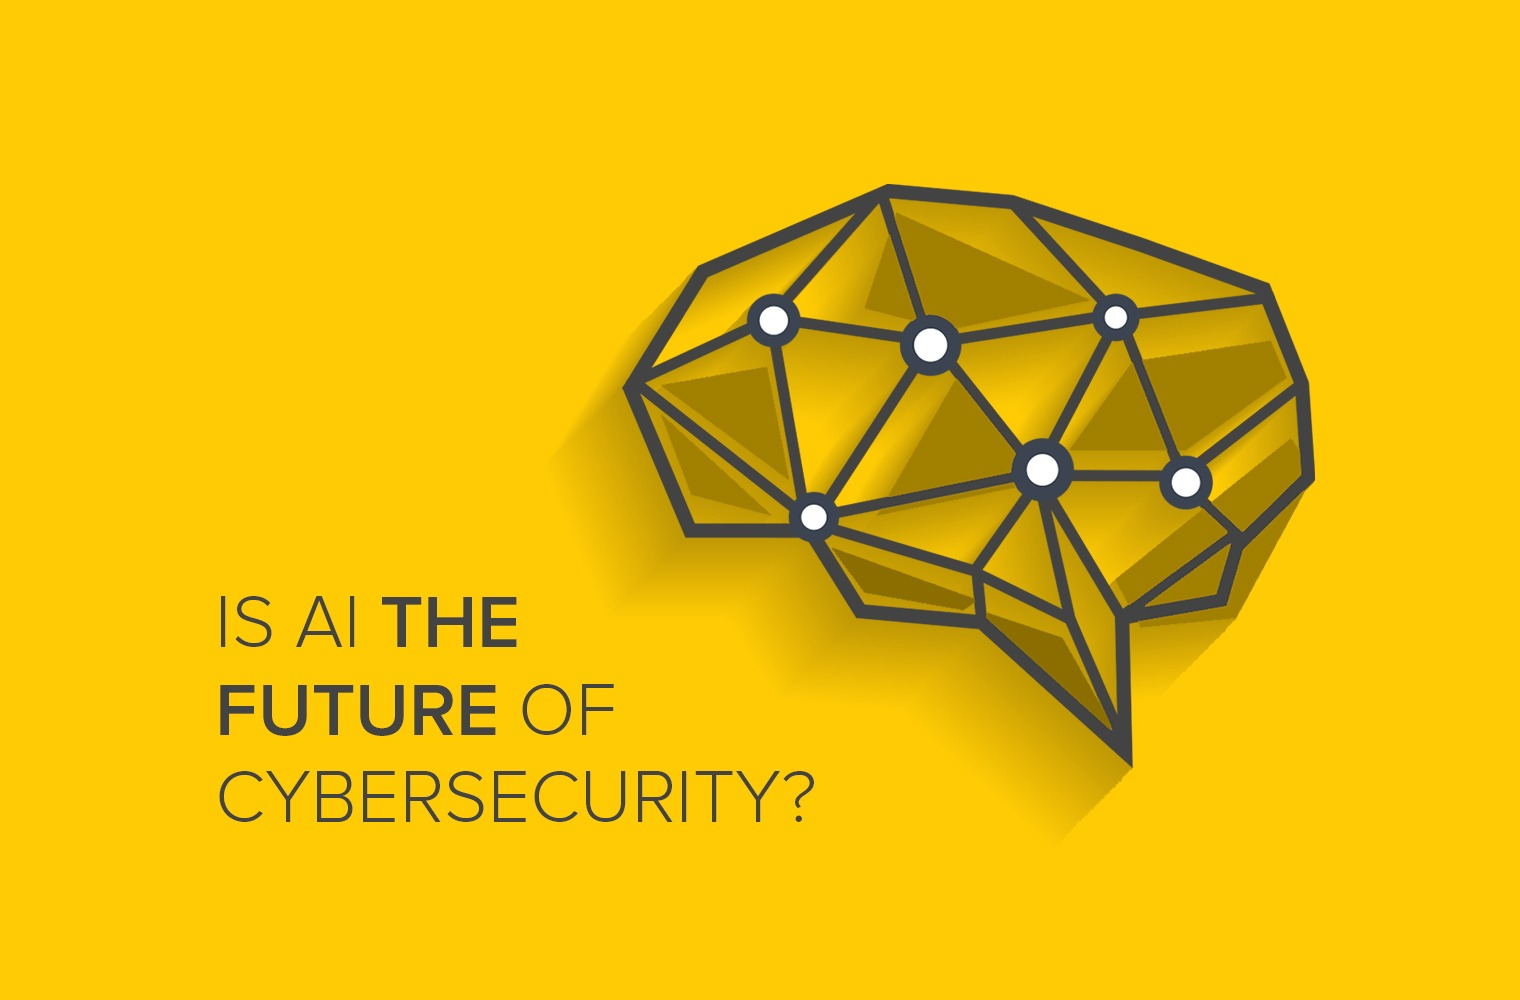 Is AI the Future of Cybersecurity?